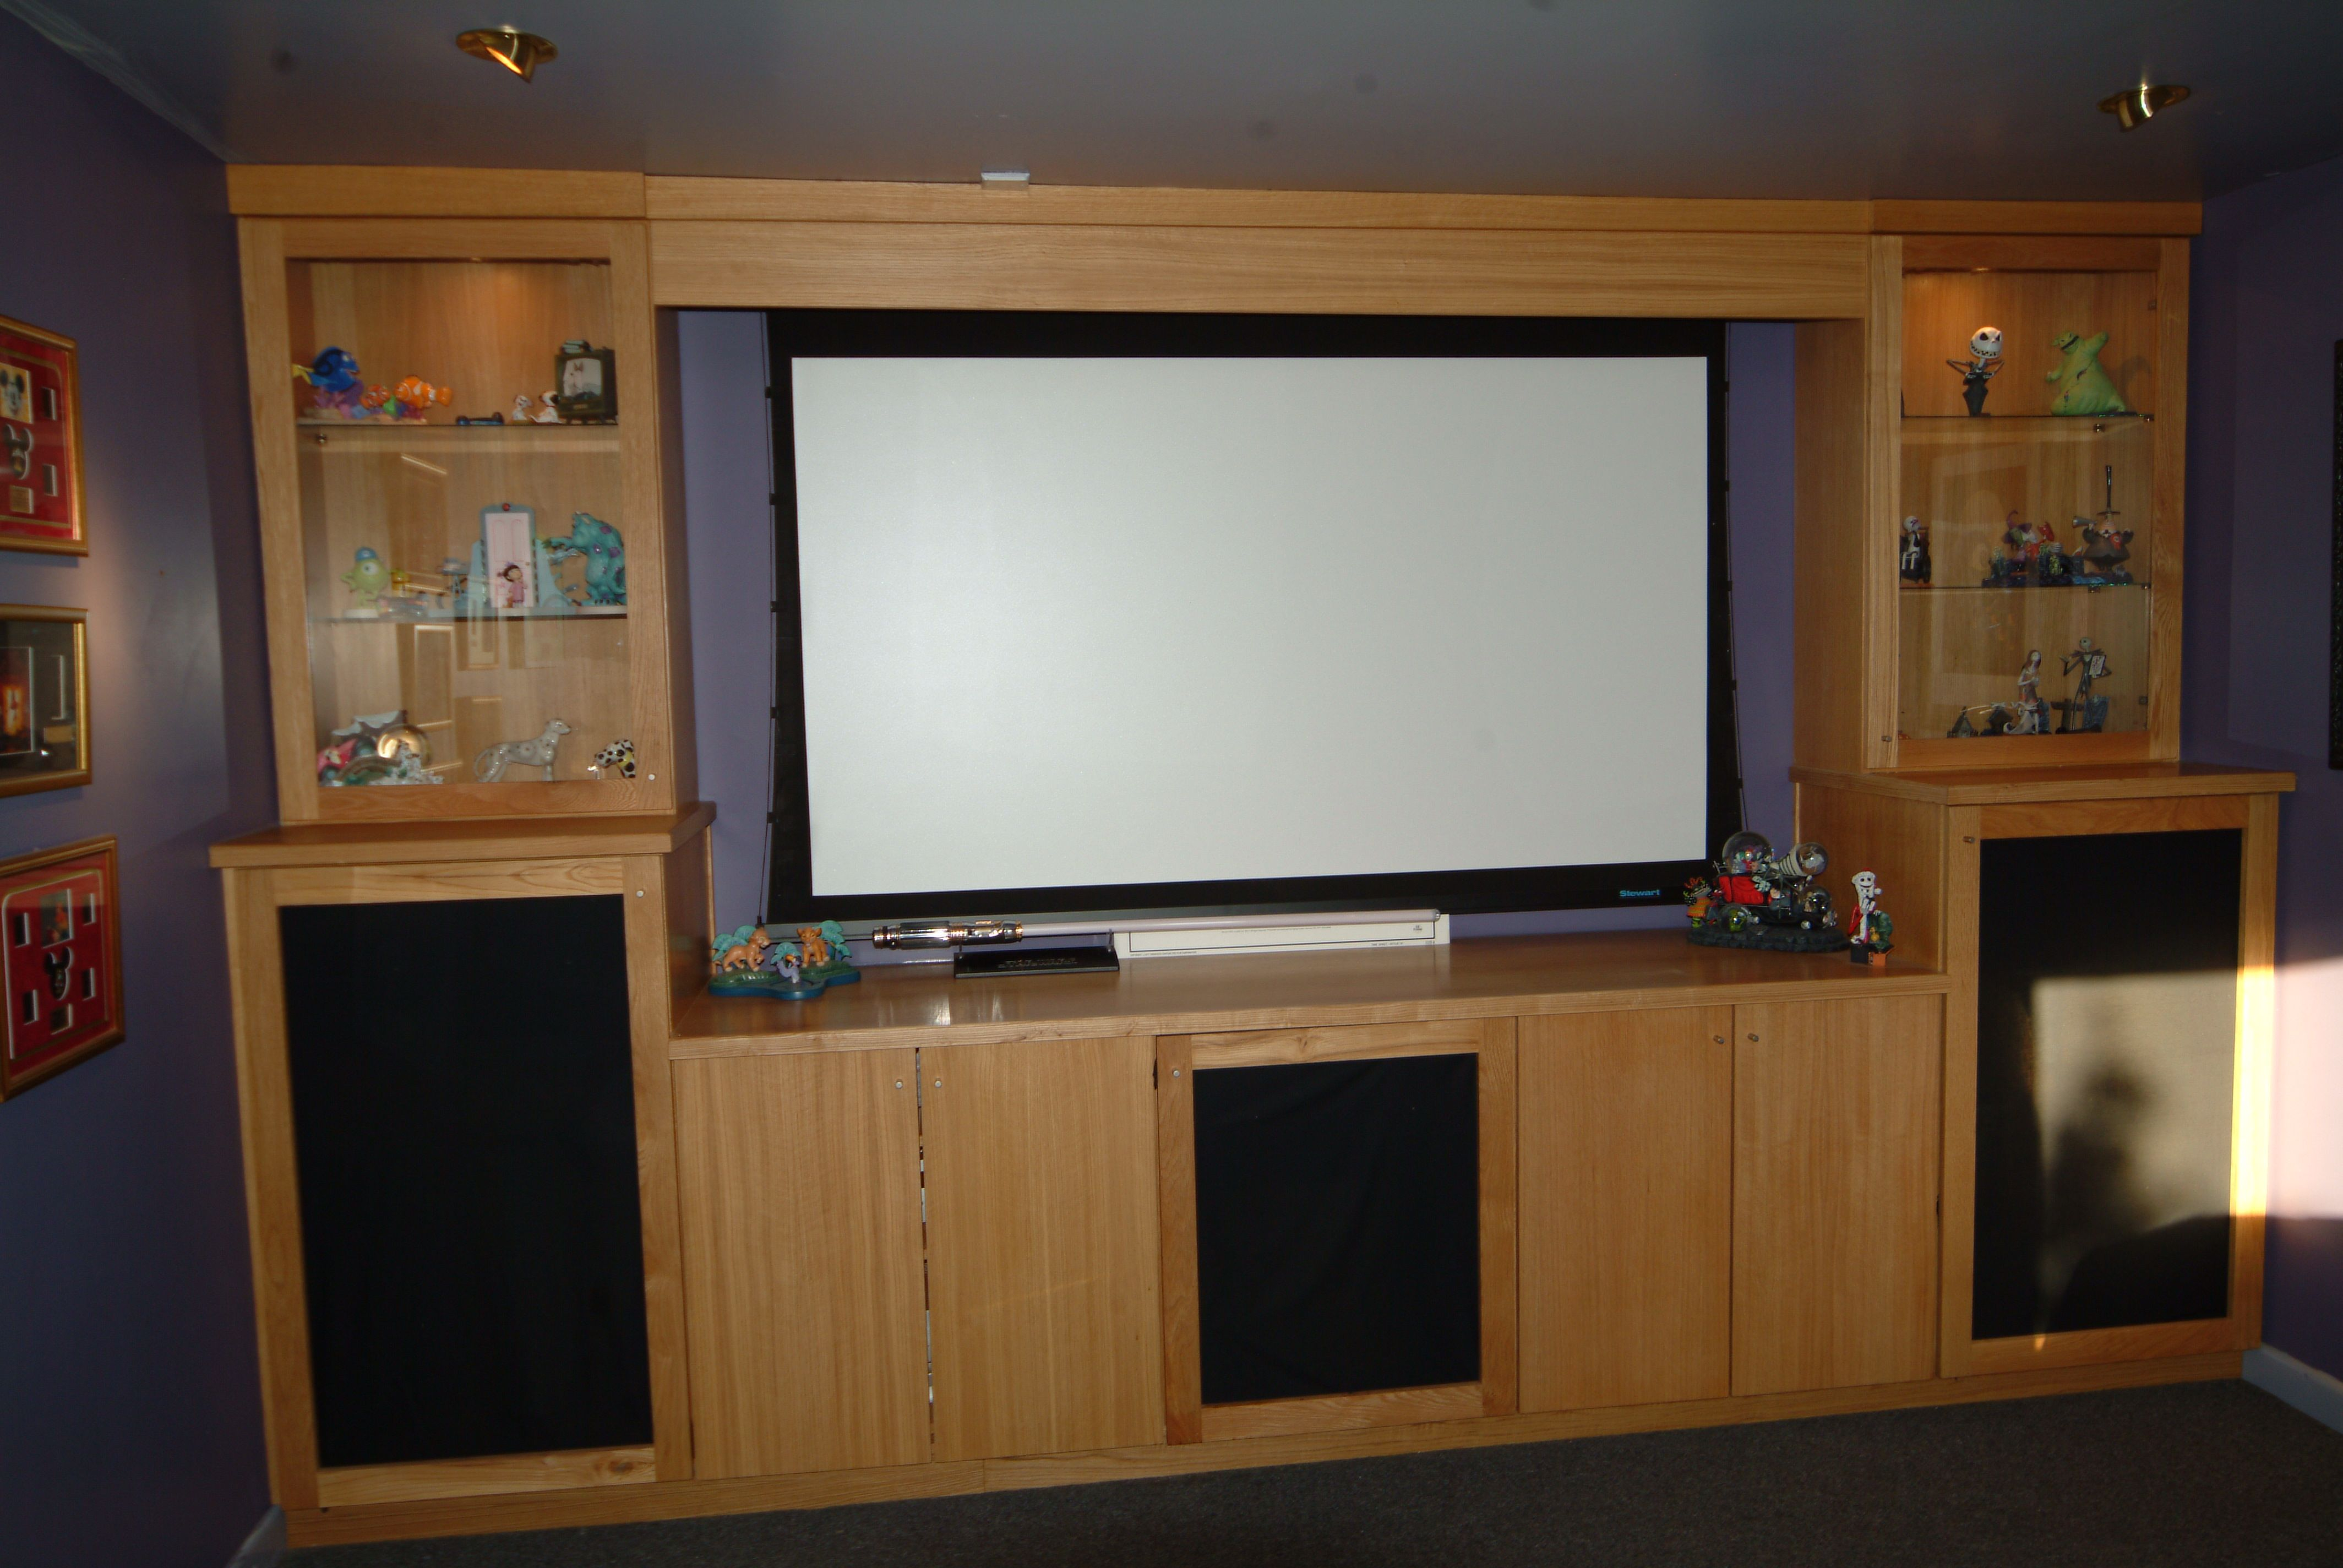 Media surround designs and ideas  by the Wall Panelling Team : ))